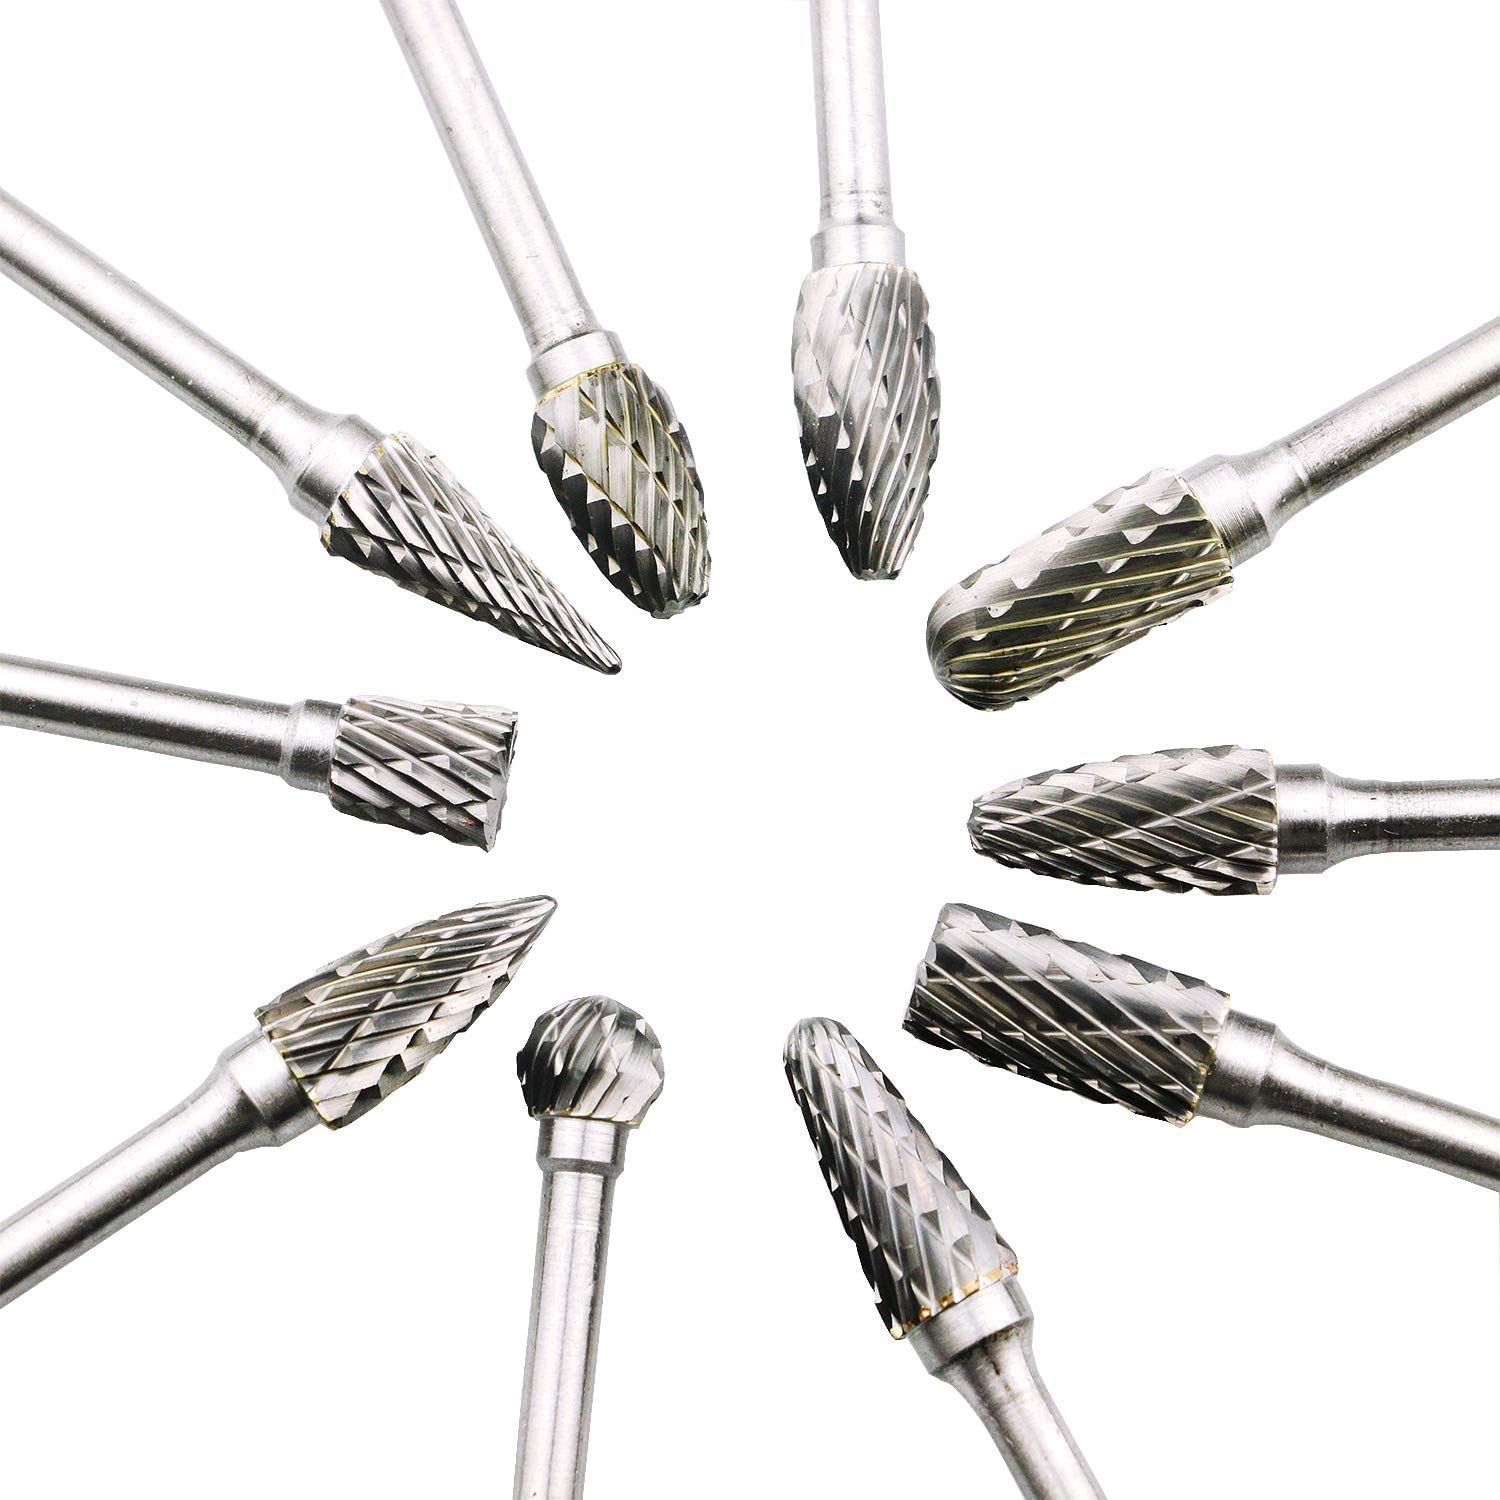 10pcs 6mm Tungsten Head Carbide Burrs Rotary Drill Die Grinder Carving Bit Kit